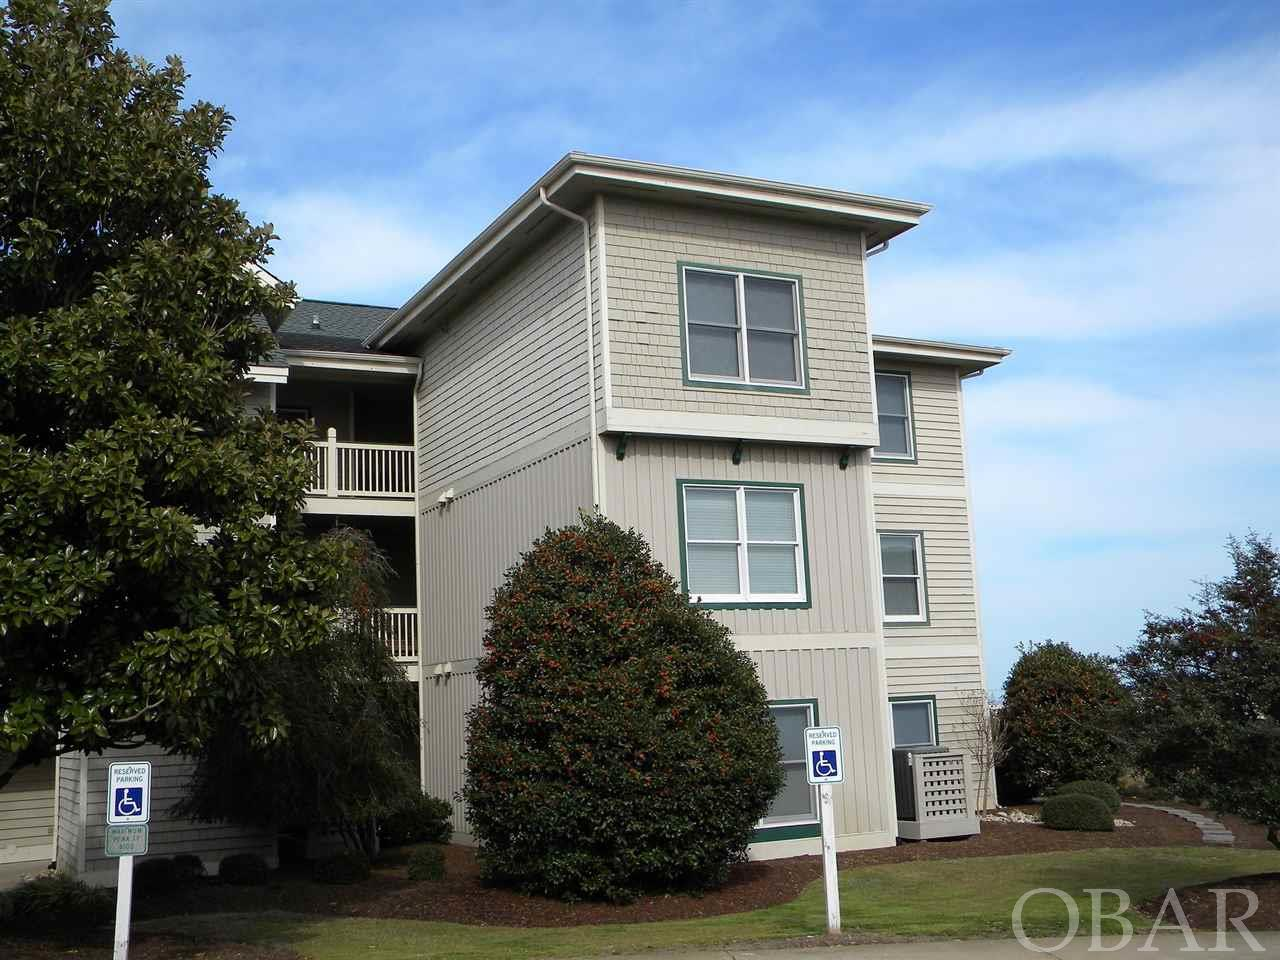 655-E Sand and Sea Court,Corolla,NC 27927,3 Bedrooms Bedrooms,3 BathroomsBathrooms,Residential,Sand and Sea Court,87692